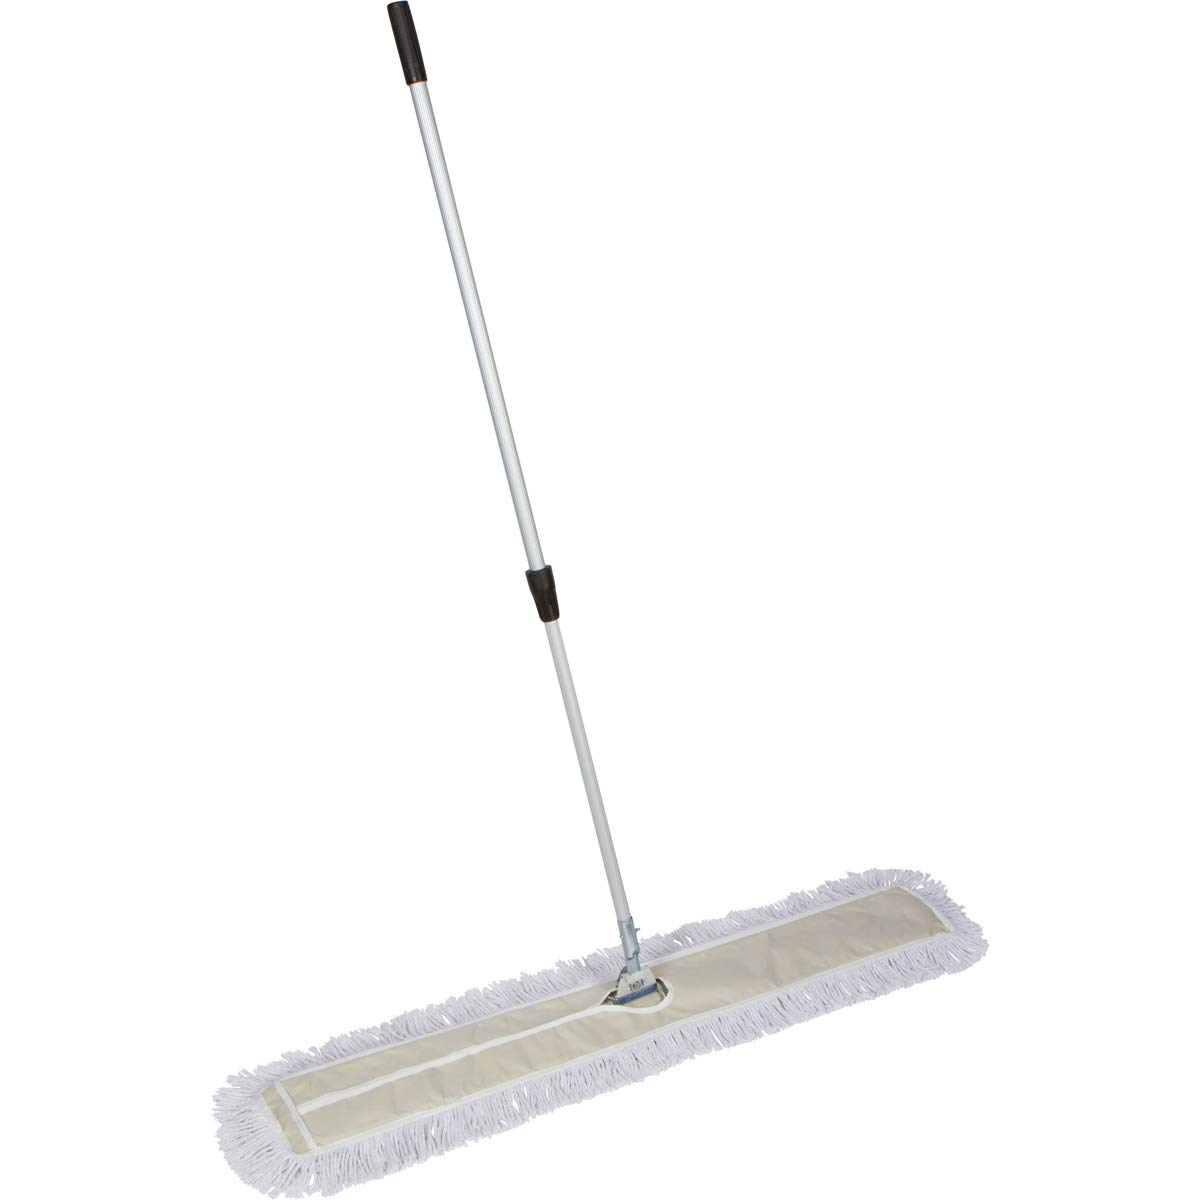 Tidy Tools 48 Inch Industrial Strength Cotton Dust Mop with Extendable Metal Telescopic Handle and Frame. 48'' X 5'' Wide Mop Head with Cut Ends by Tidy Tools (Image #1)